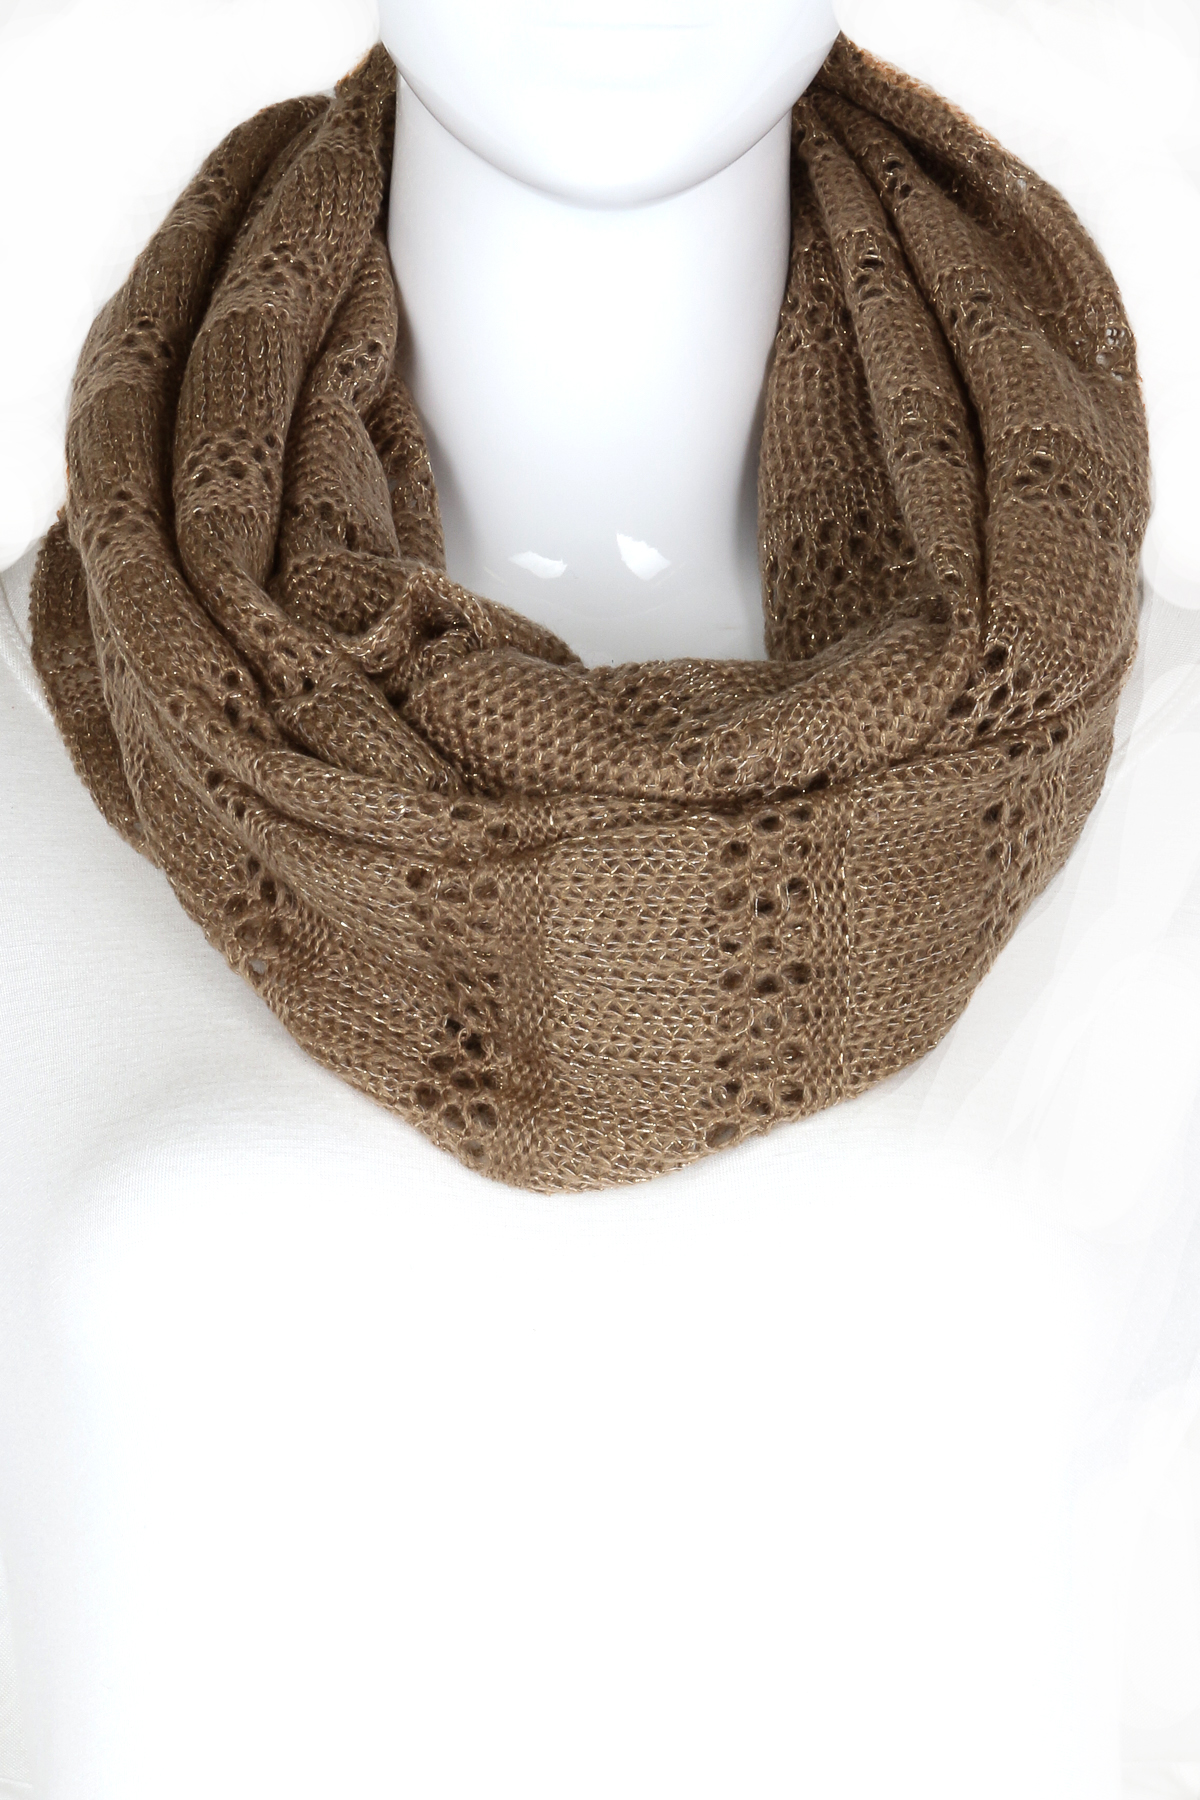 how to finish a knitted infinity scarf